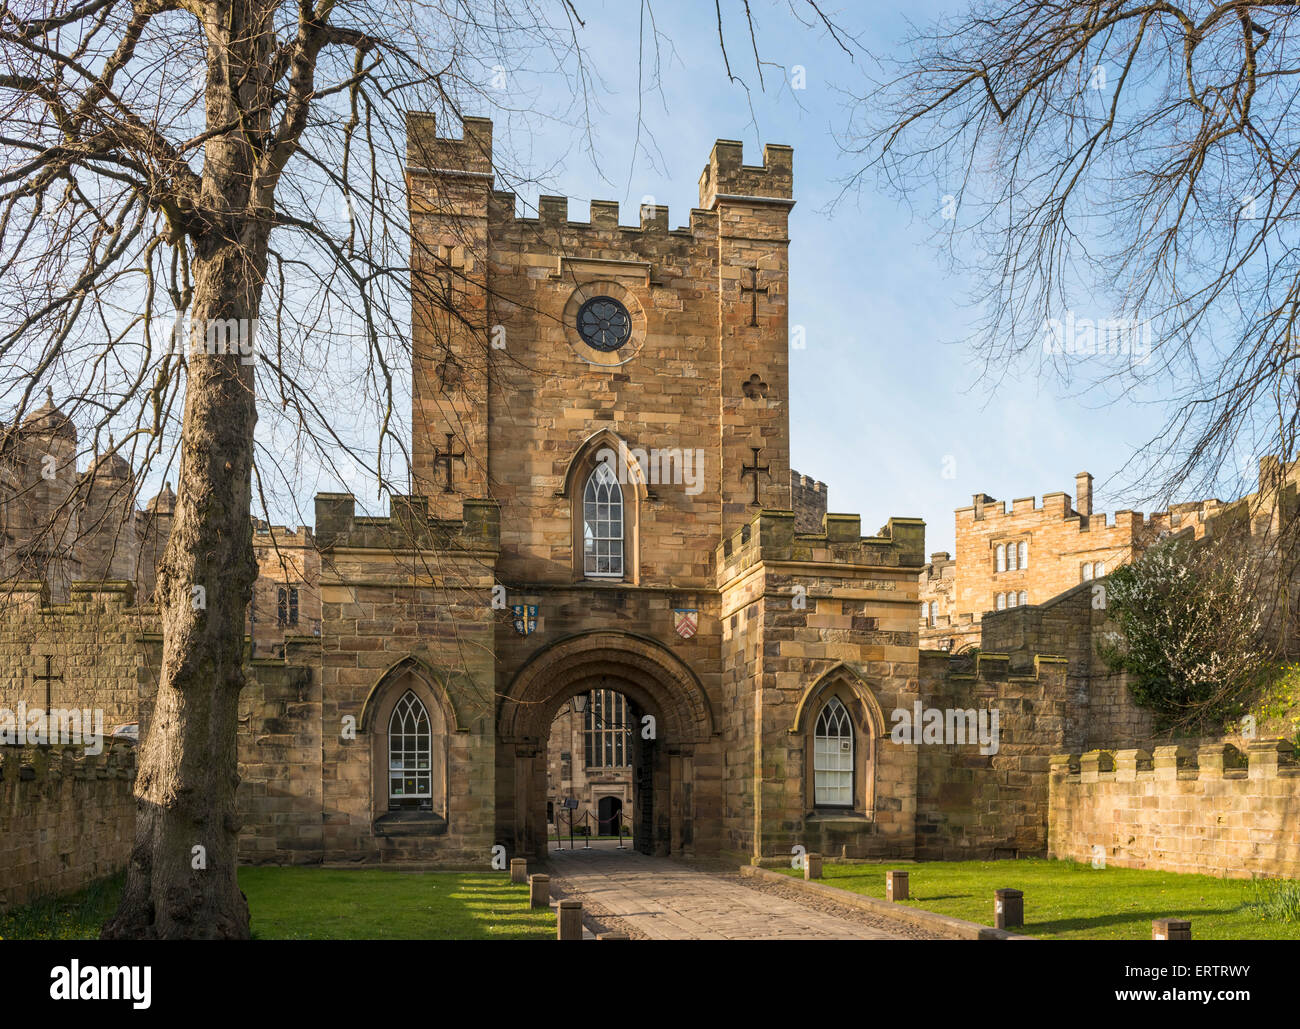 Gate into Durham Castle, now Durham University student accommodation, County Durham, England, UK - Stock Image